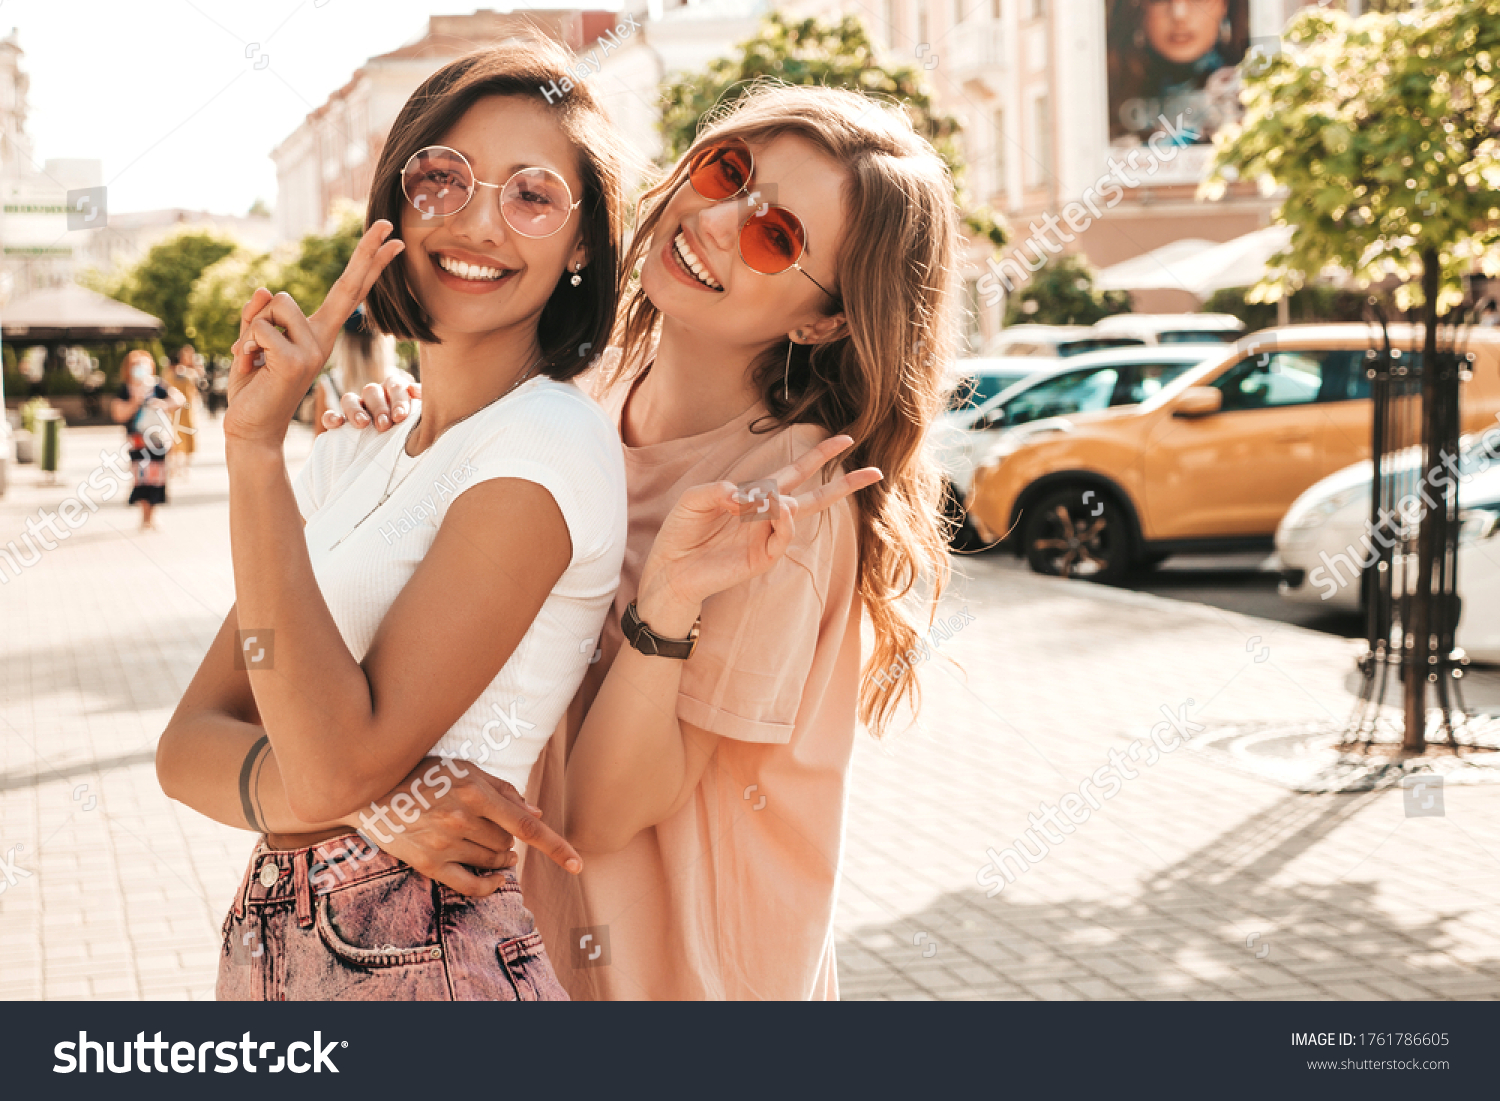 Two young beautiful smiling hipster girls in trendy summer clothes.Sexy carefree women posing on the street background in sunglasses. Positive models having fun and hugging.They going crazy #1761786605